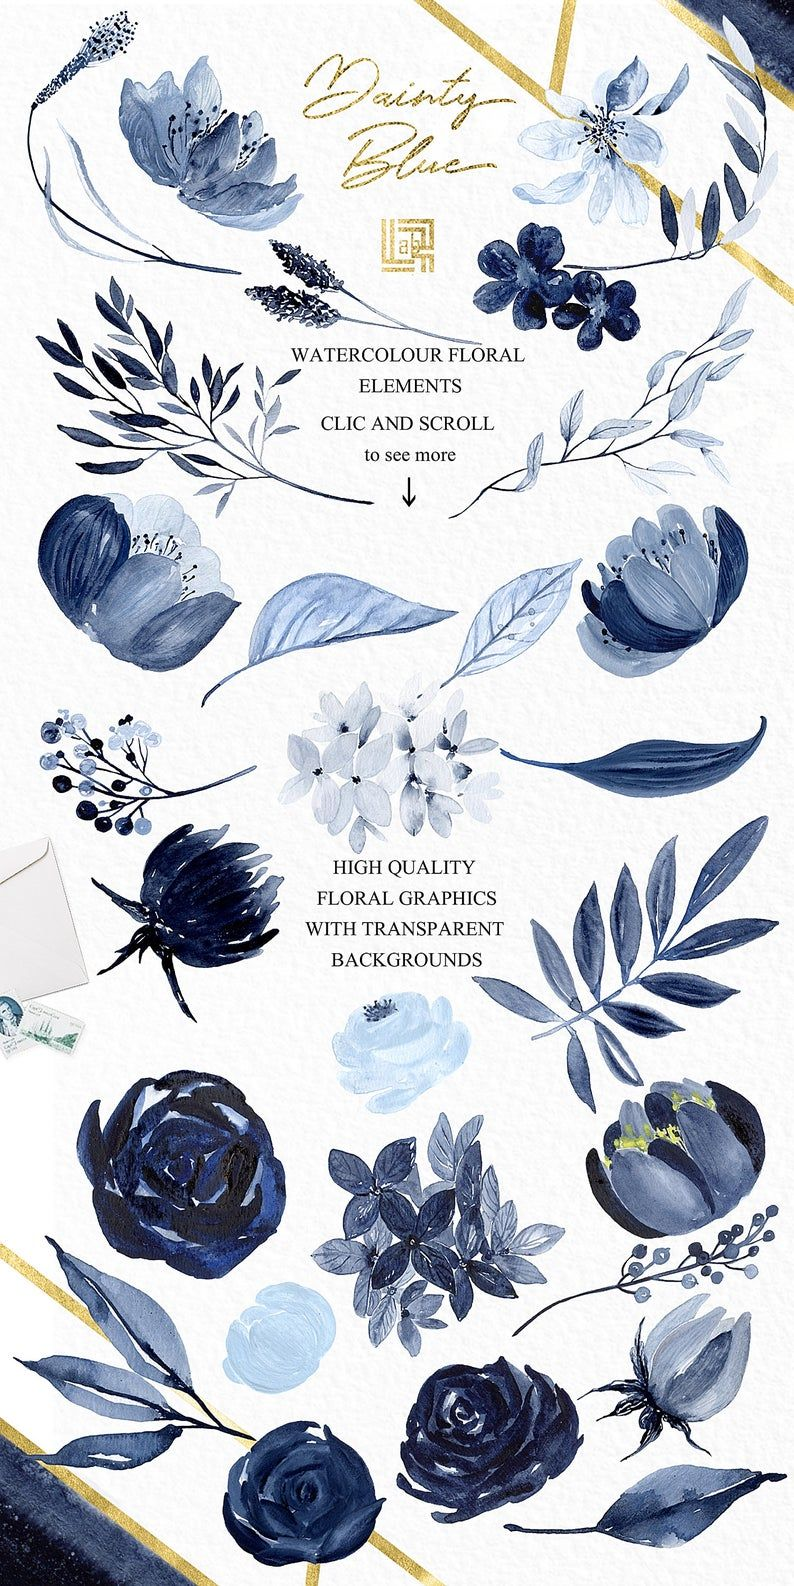 Dainty Blue Navy Blue Watercolor Flowers And Branches Etsy Watercolor Flowers Navy Blue Flowers Blue Watercolor